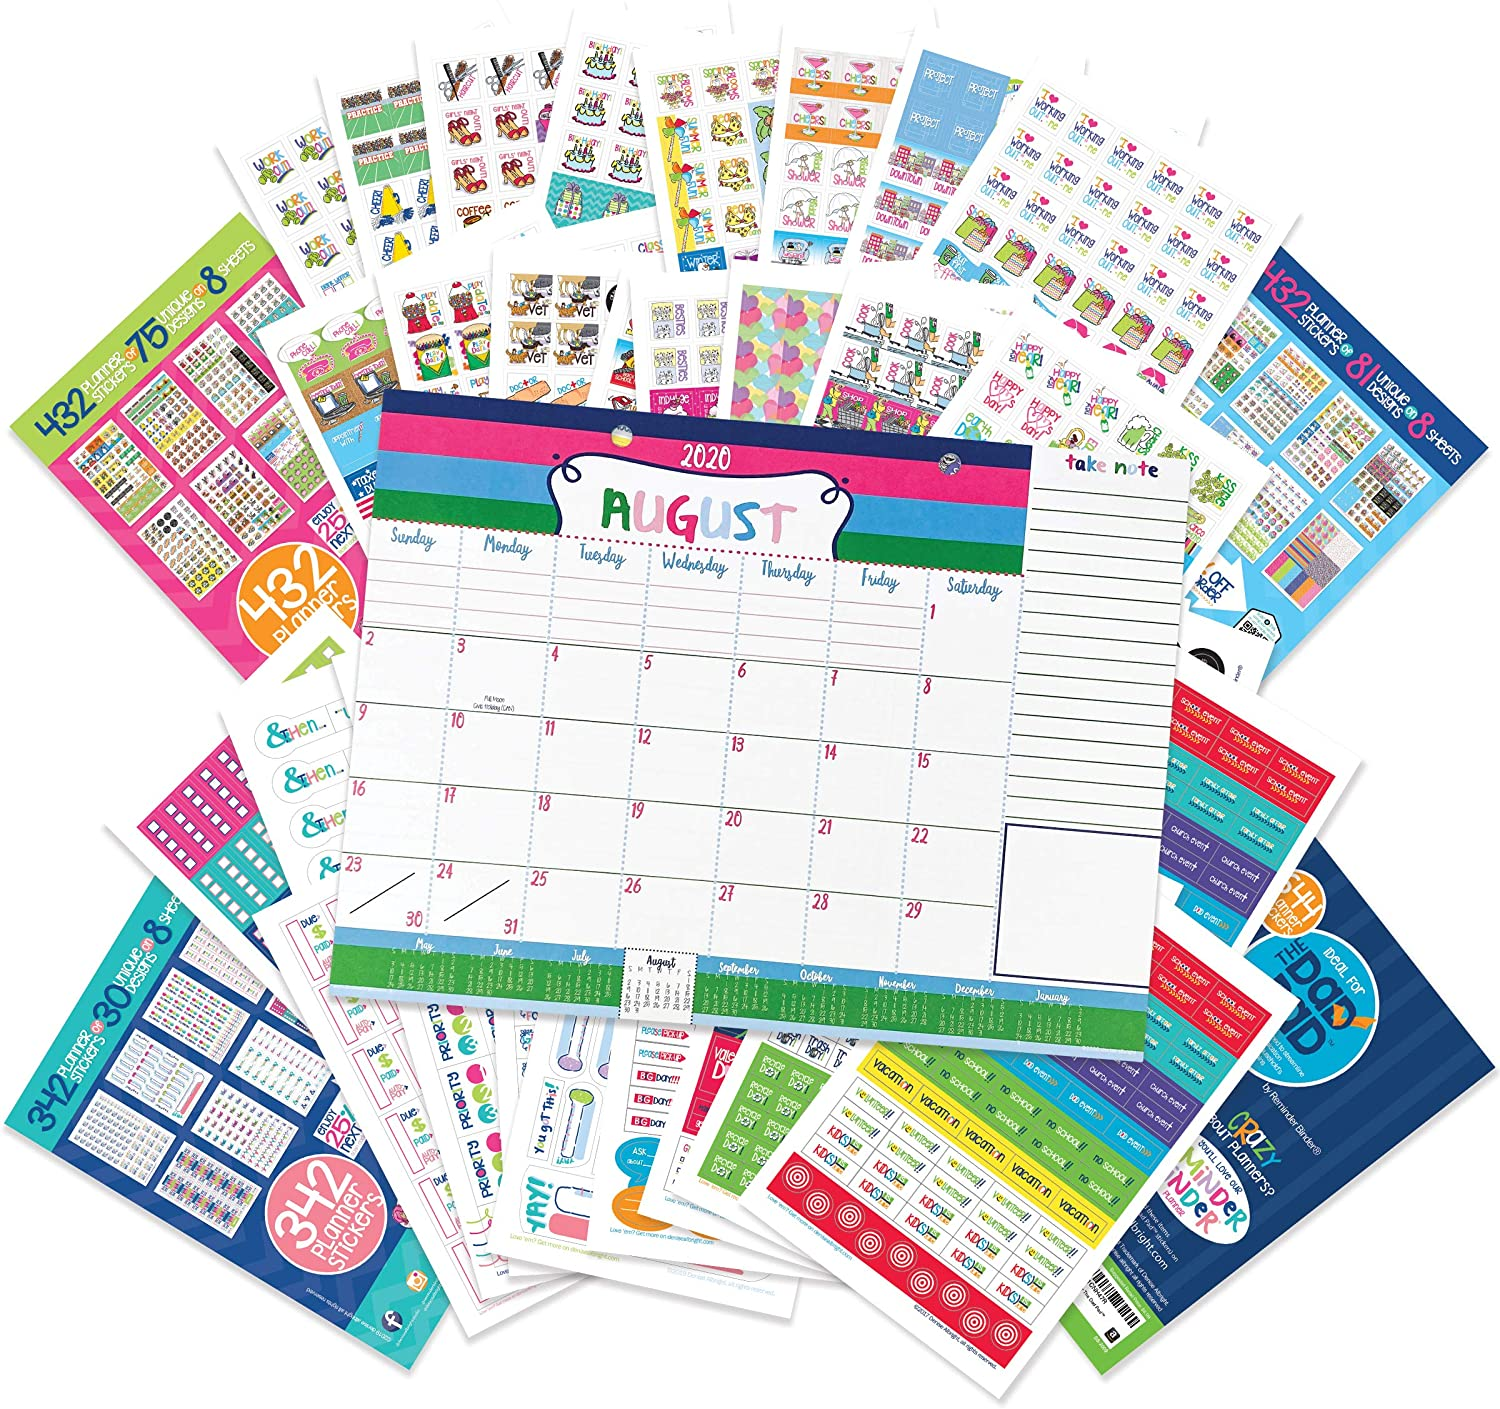 Reminder Binder 18-Month 2020-2021 Monthly Desk Calendar + Event Stickers Variety Set (Total of 1850 Stickers) with Tear-Off Lists, Scheduling Tools, Bill Pay Worksheet and More (Bundle of 2 Items)